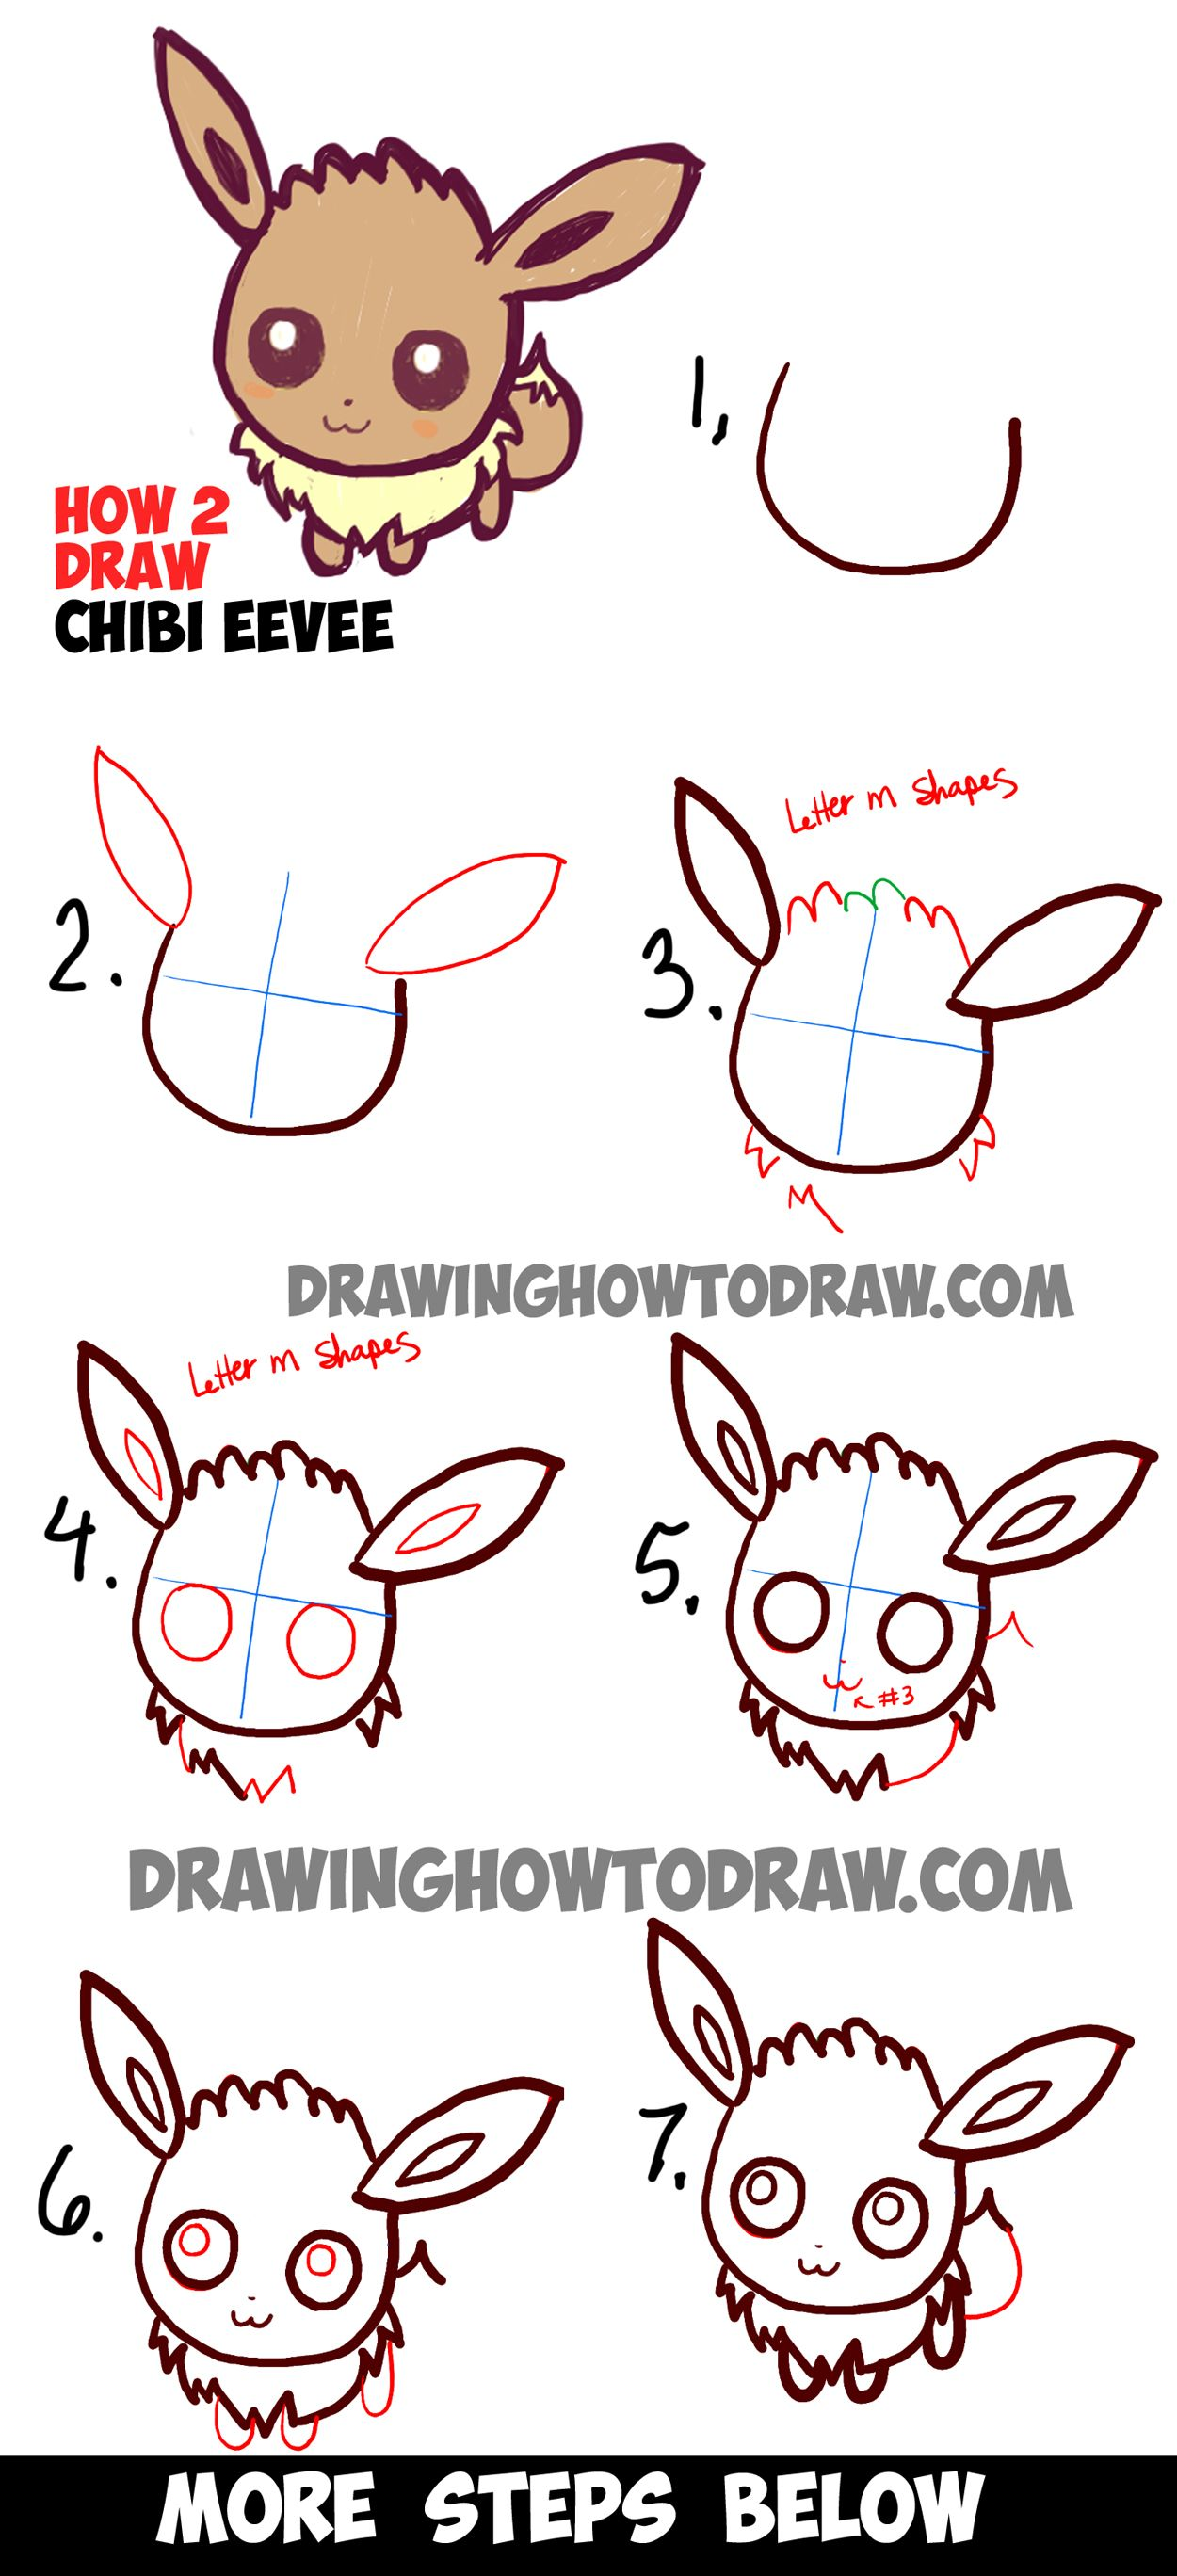 How To Draw Cute Baby Chibi Eevee From Pokemon Easy Step By Step Drawing Tutorial How To Draw Step By Step Drawing Tutorials Drawing Tutorial Pokemon Kawaii Drawings